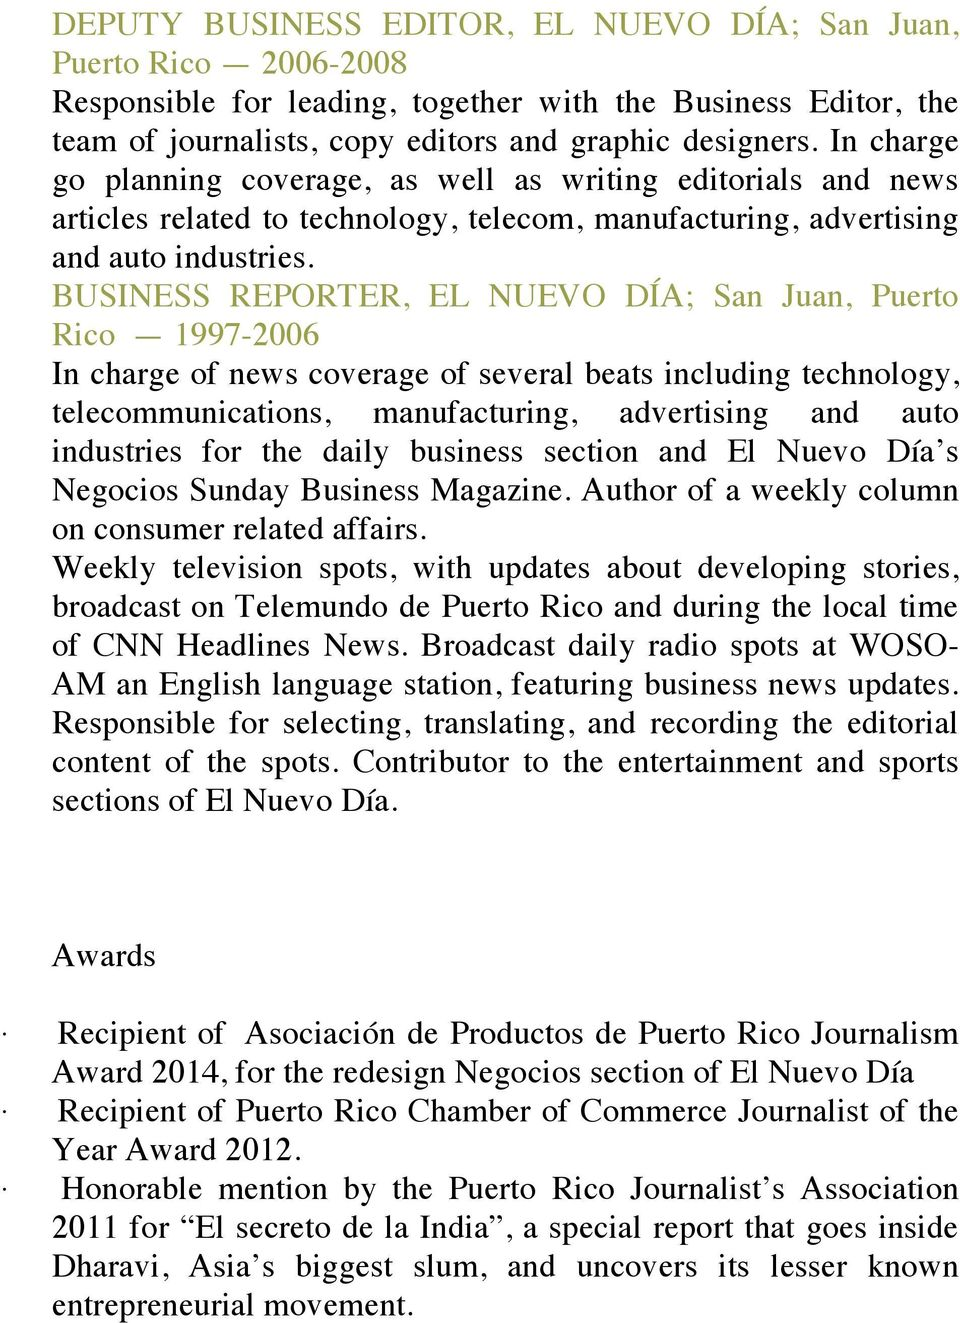 BUSINESS REPORTER, EL NUEVO DÍA; San Juan, Puerto Rico 1997-2006 In charge of news coverage of several beats including technology, telecommunications, manufacturing, advertising and auto industries